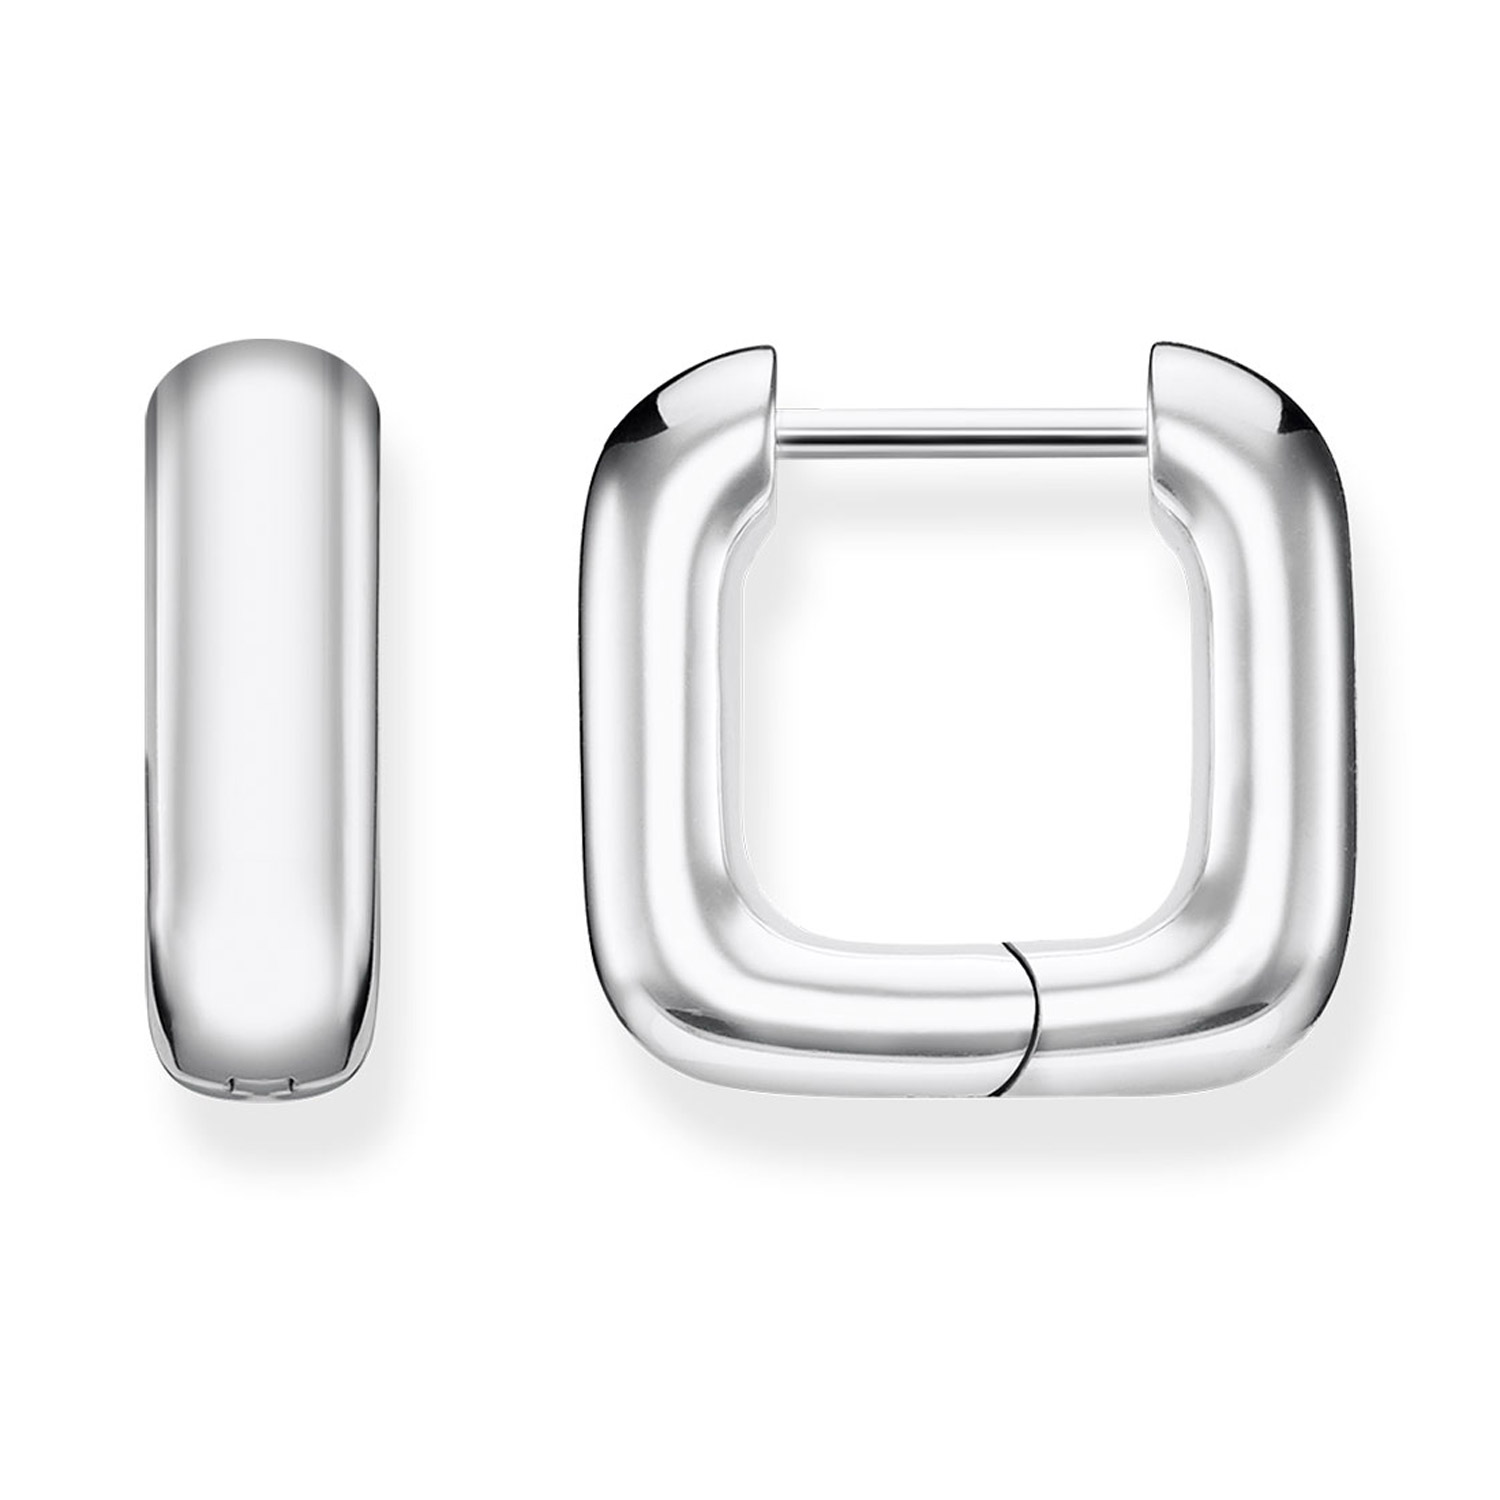 Thomas Sabo CR630-001-21 Damen-Creolen